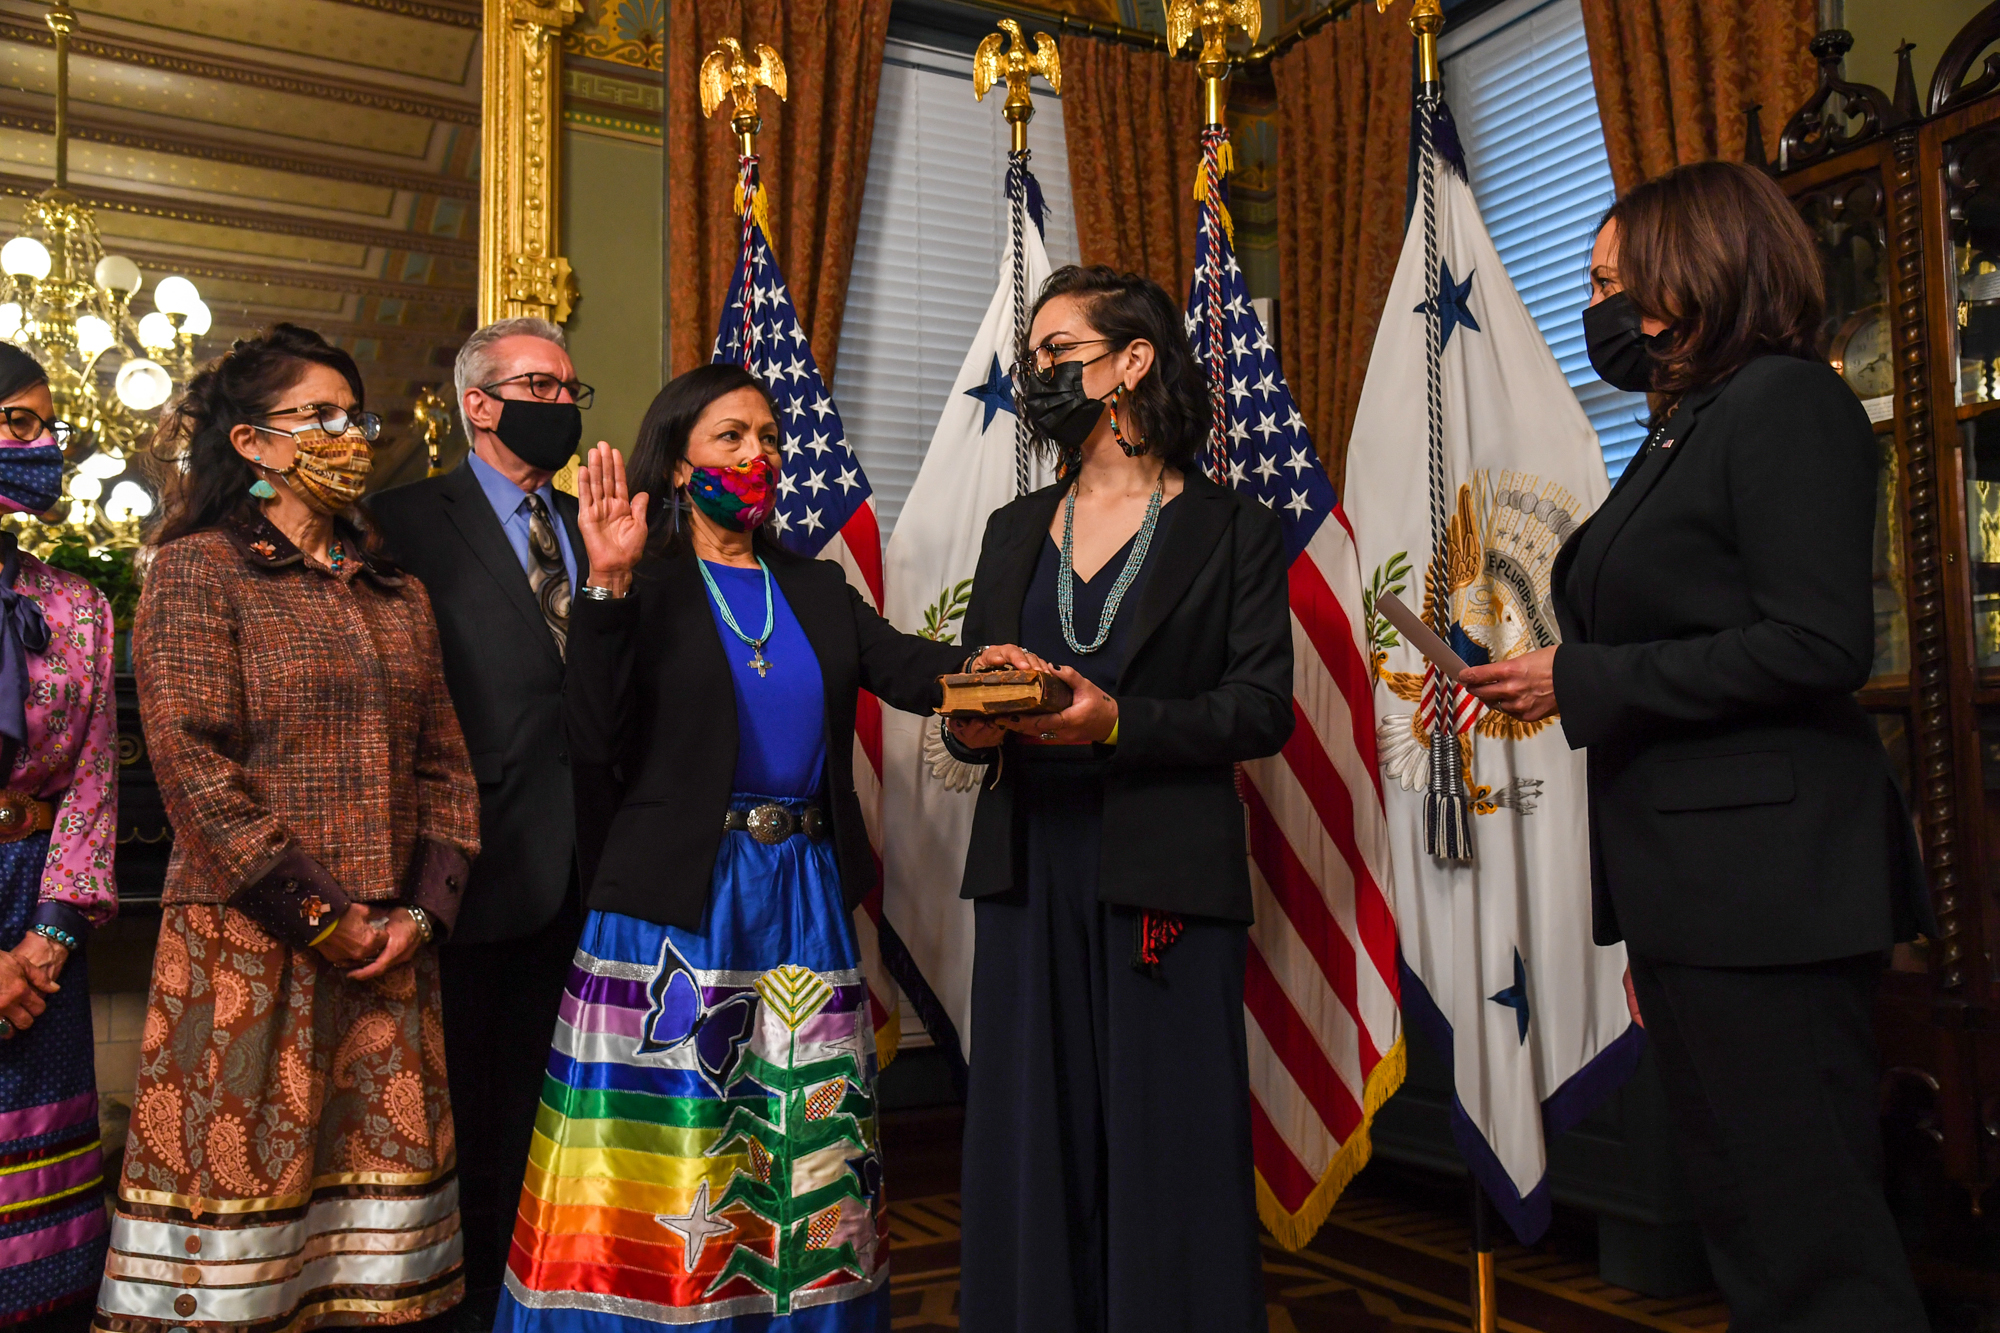 Interior Secretary Deb Haaland is being swrong in to her new position. She has a hand raised and is facing Vice President Kamala Harris.